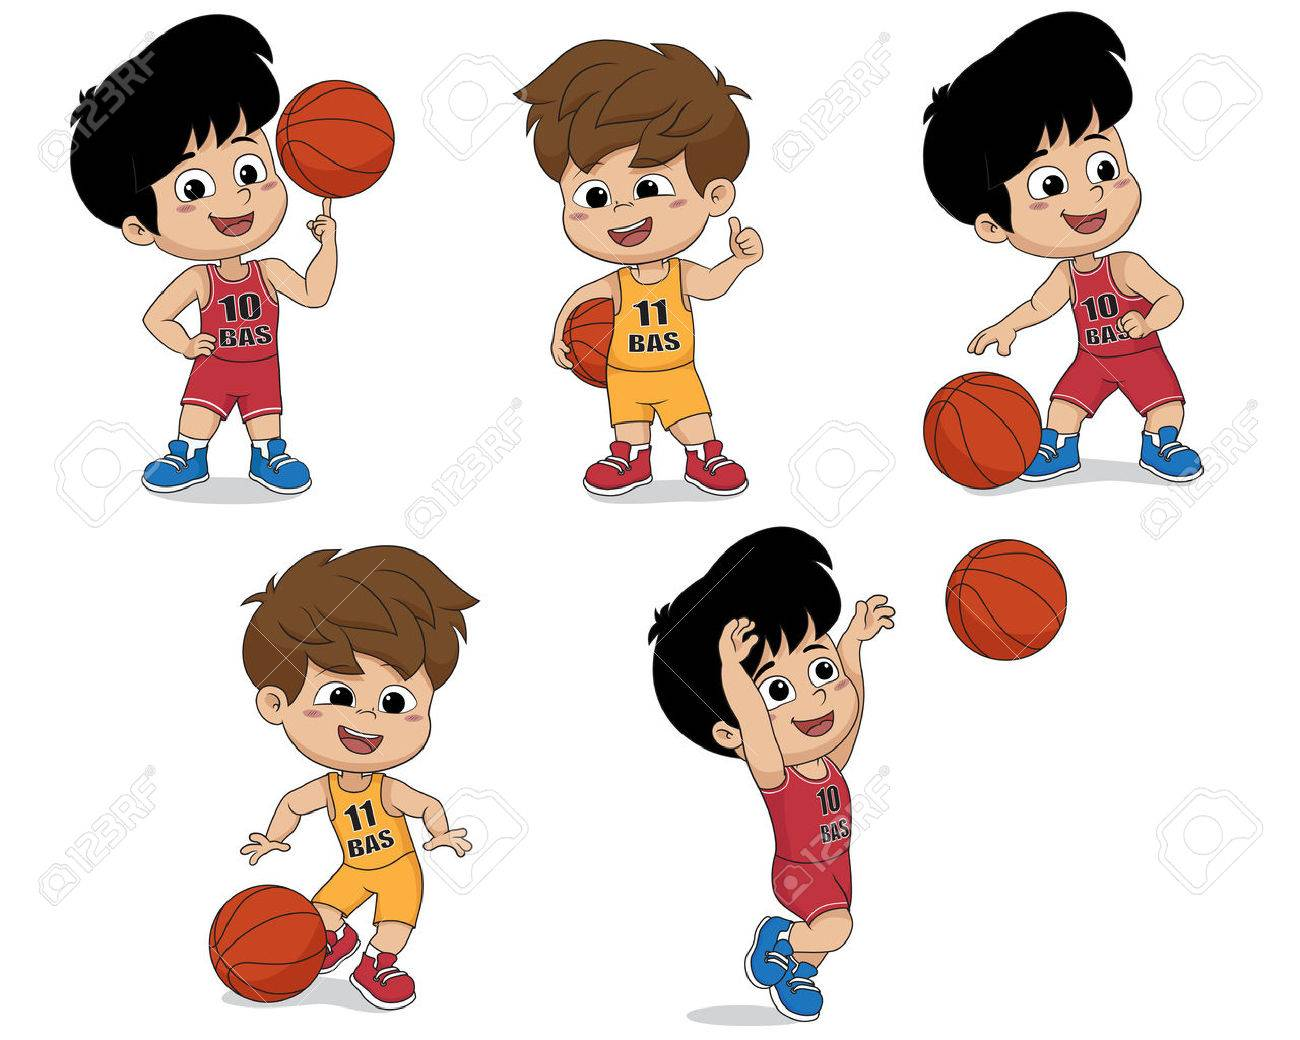 FIVE BOYS PLAYING WITH BASKETBALLS